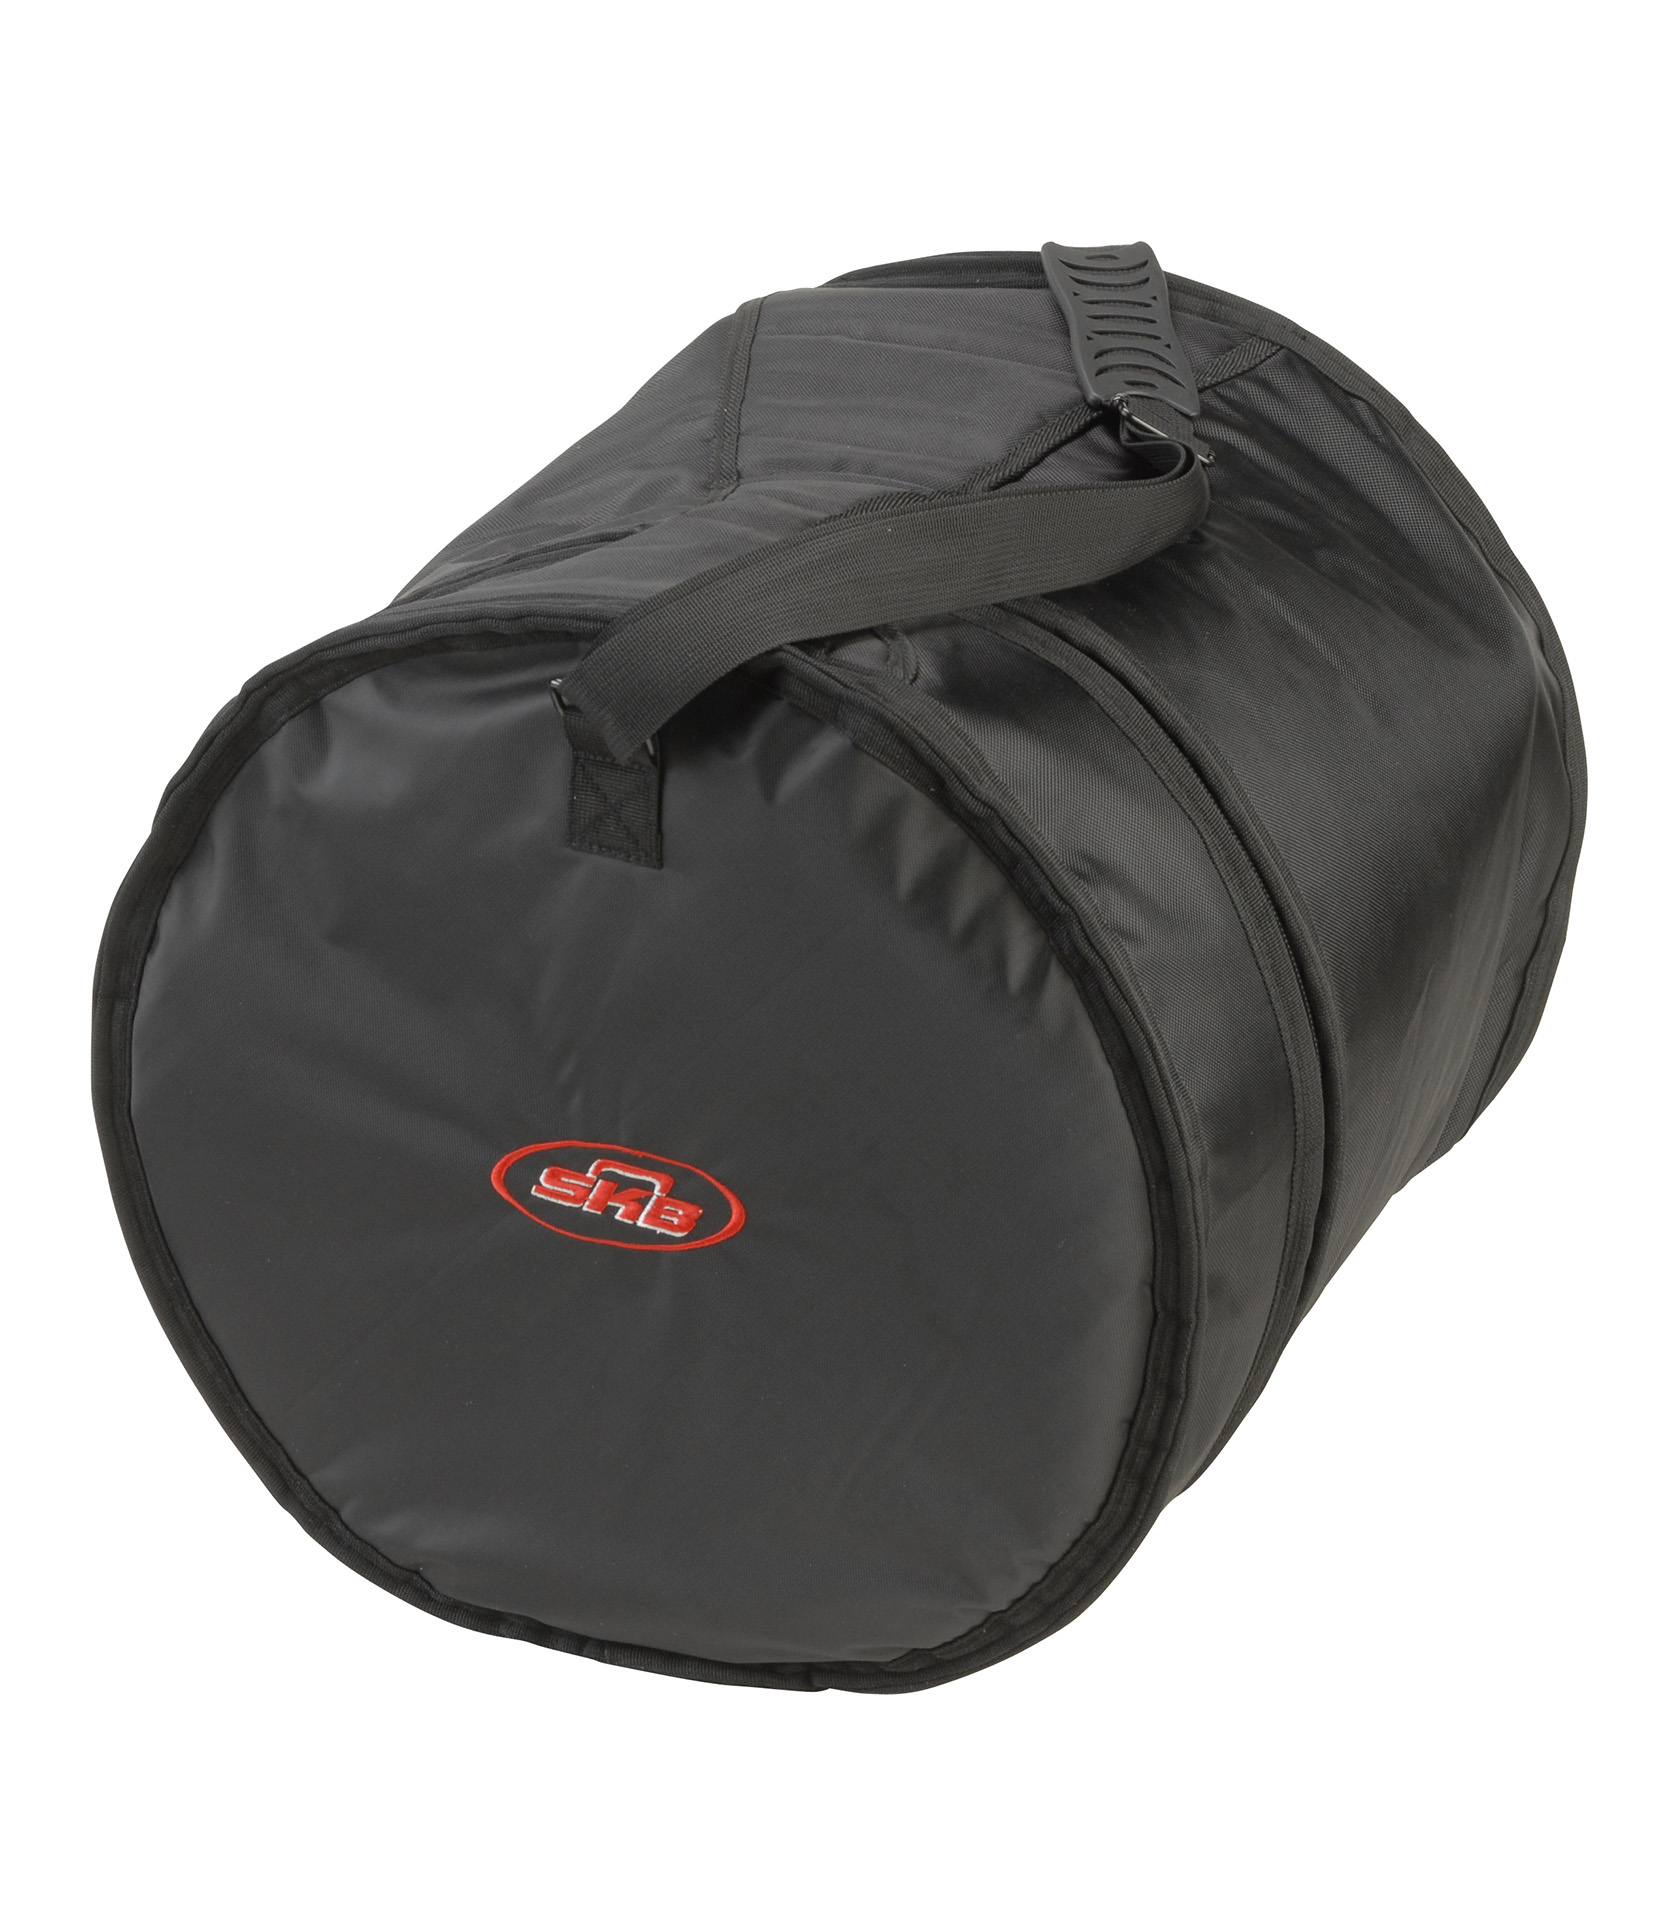 buy skb 1skb db1214 12 x 14 tom gig bag